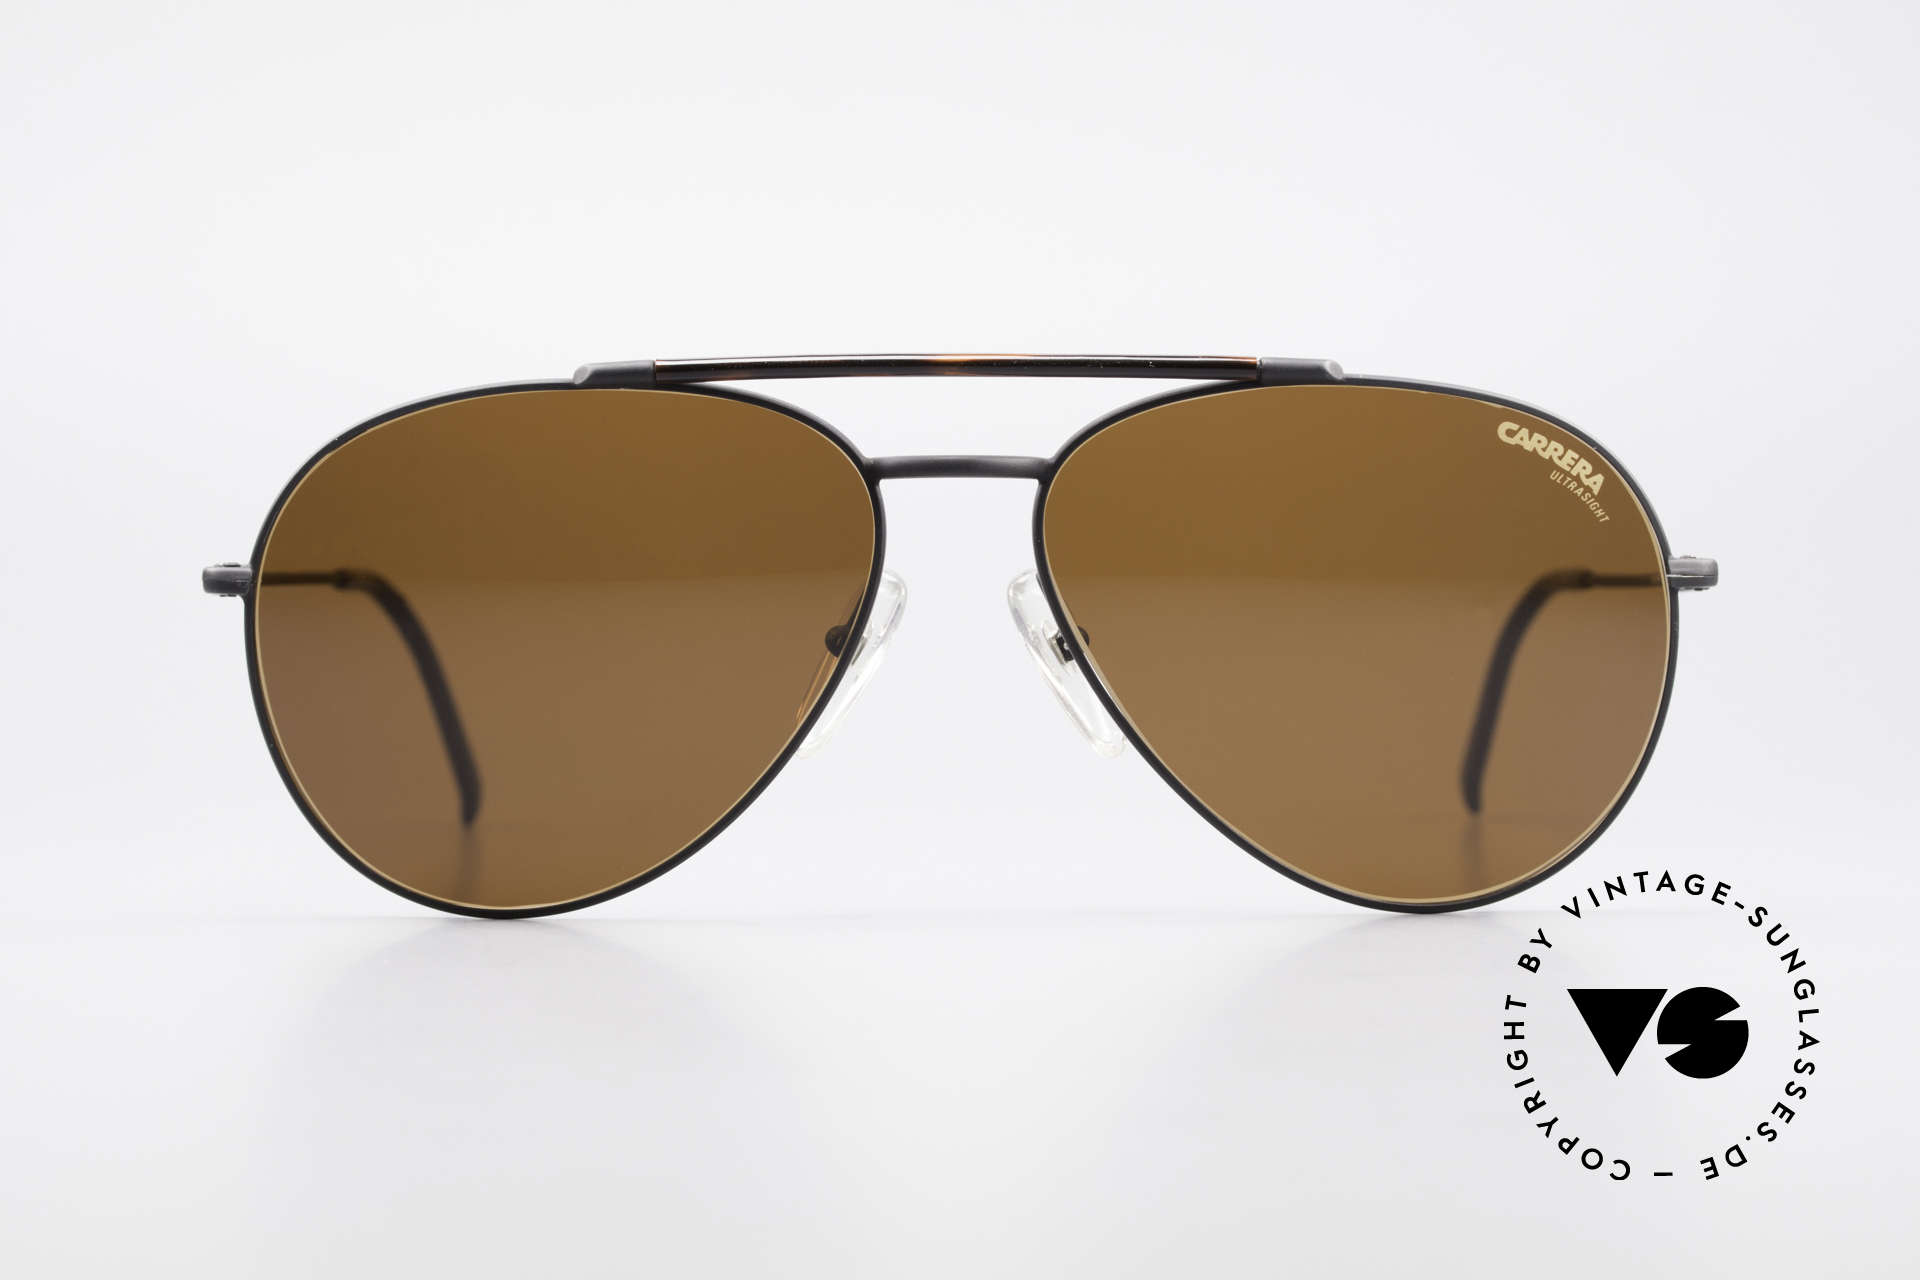 Carrera 5349 True Vintage Aviator Shades, dull black frame with a tortoise colored brow bar, Made for Men